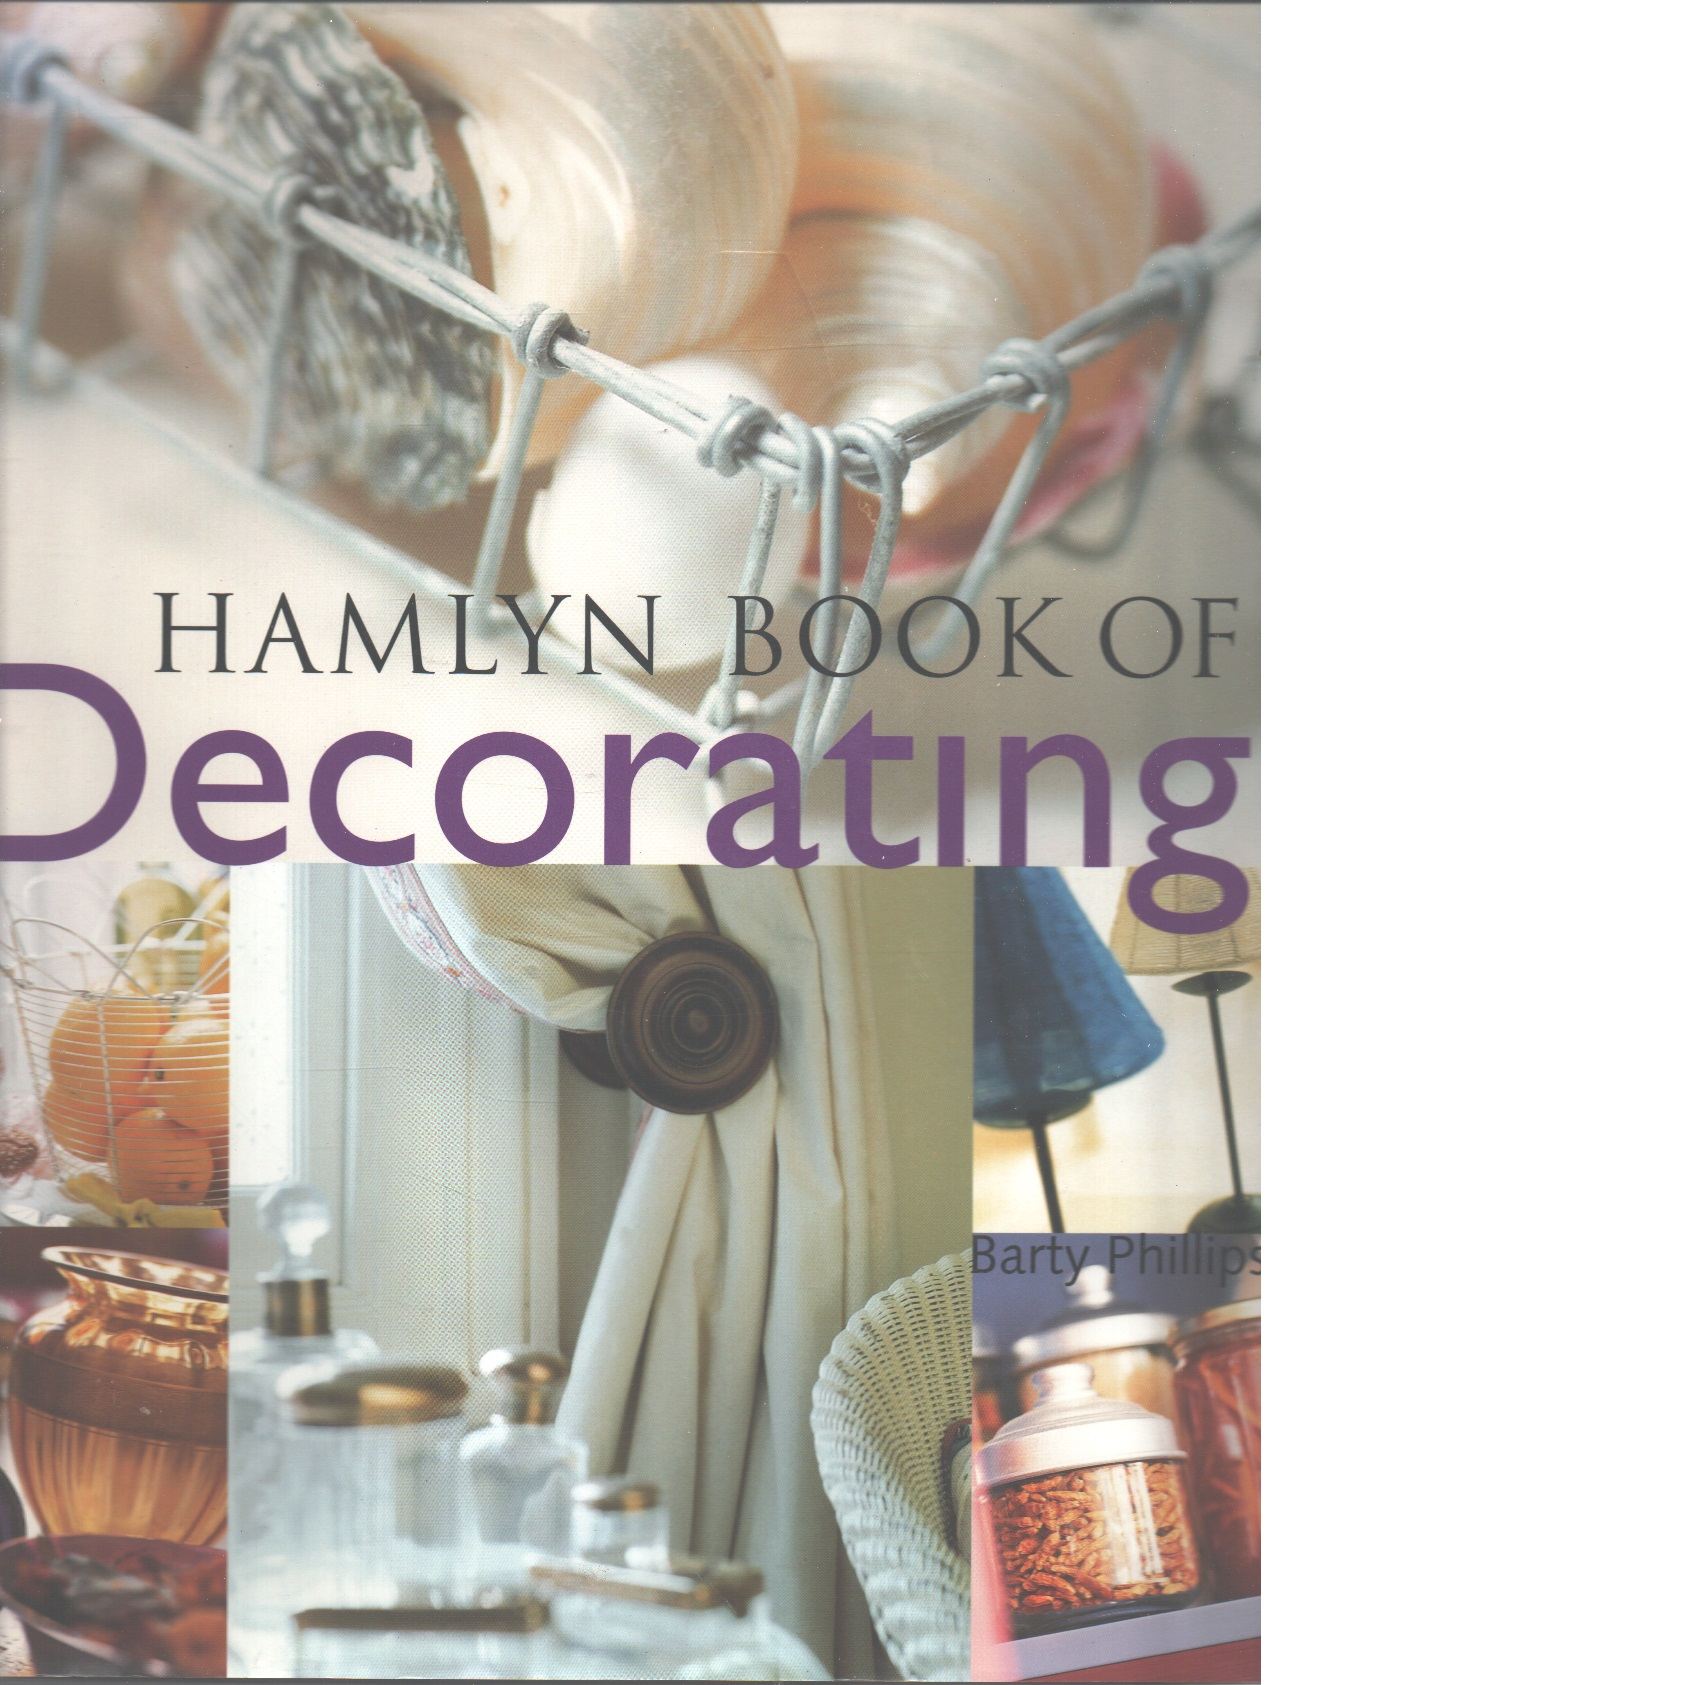 The Hamlyn Book of Decorating - Phillips, Barty